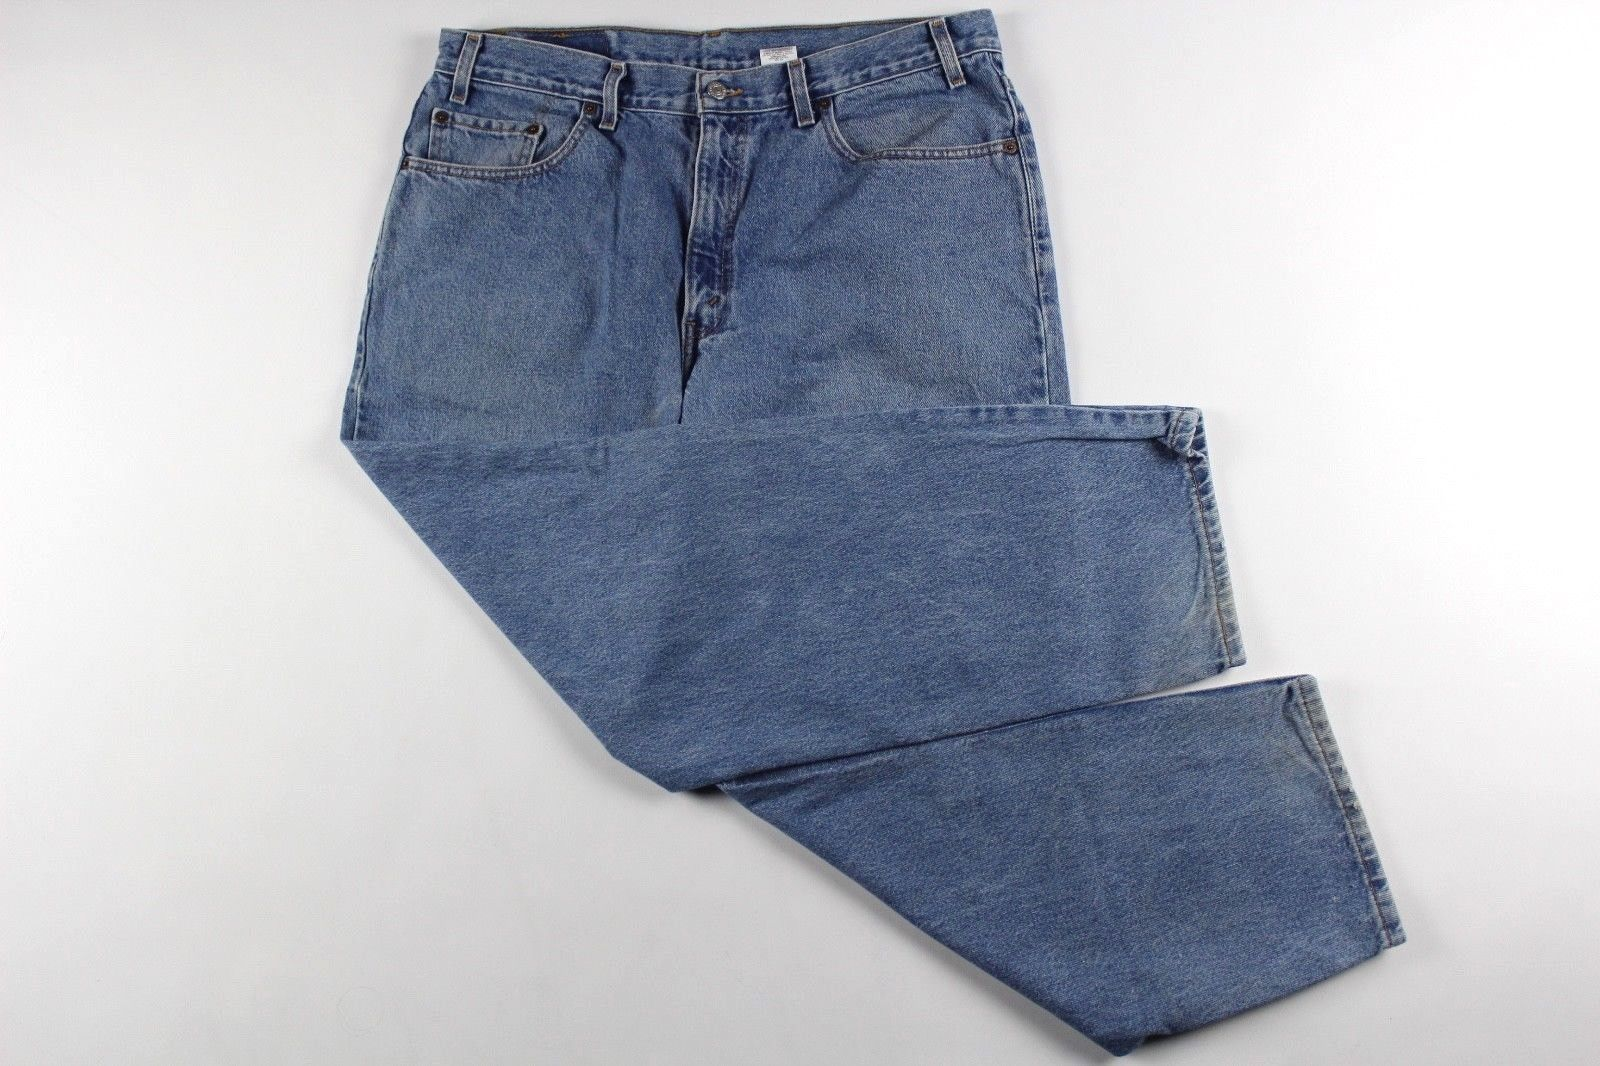 62a2866a S l1600. S l1600. Previous. Vintage 90s LEVIS Mens 38x30 Relaxed Fit  Straight Leg Denim Jeans Pants Blue